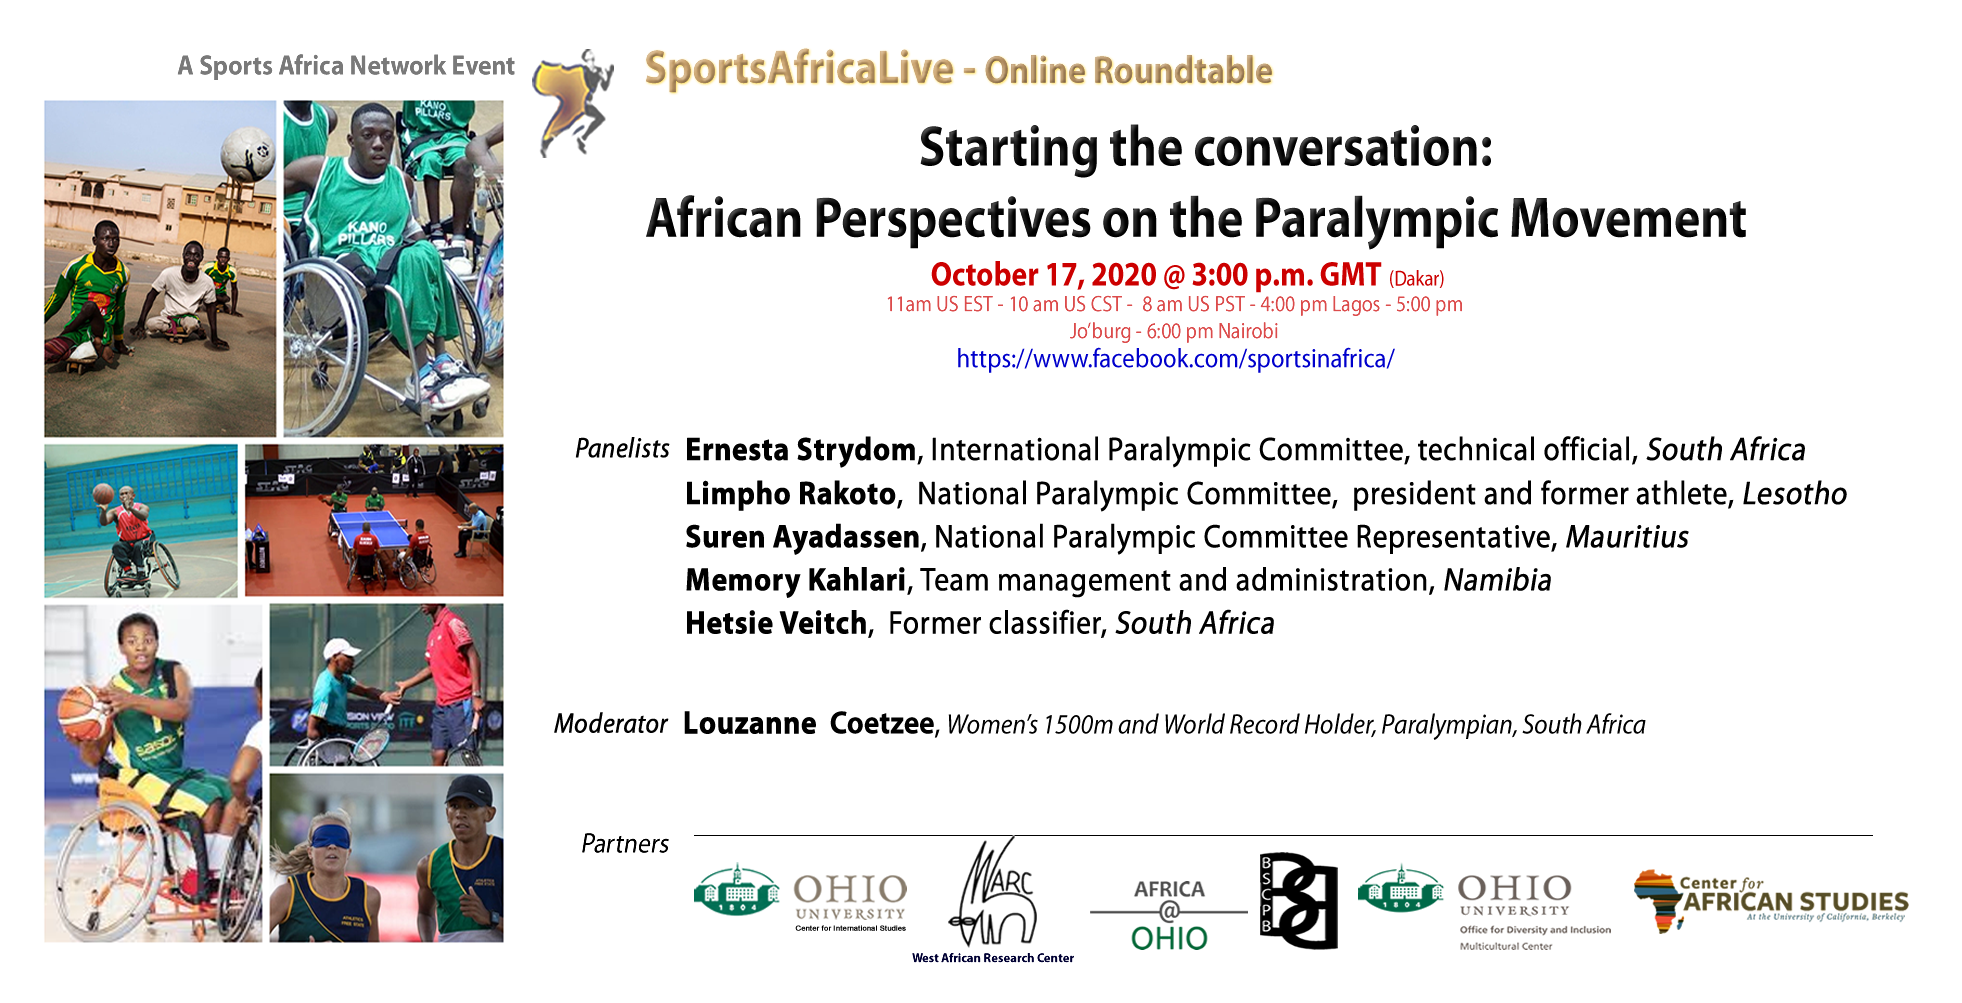 African Perspectives on the Paralympic Movement